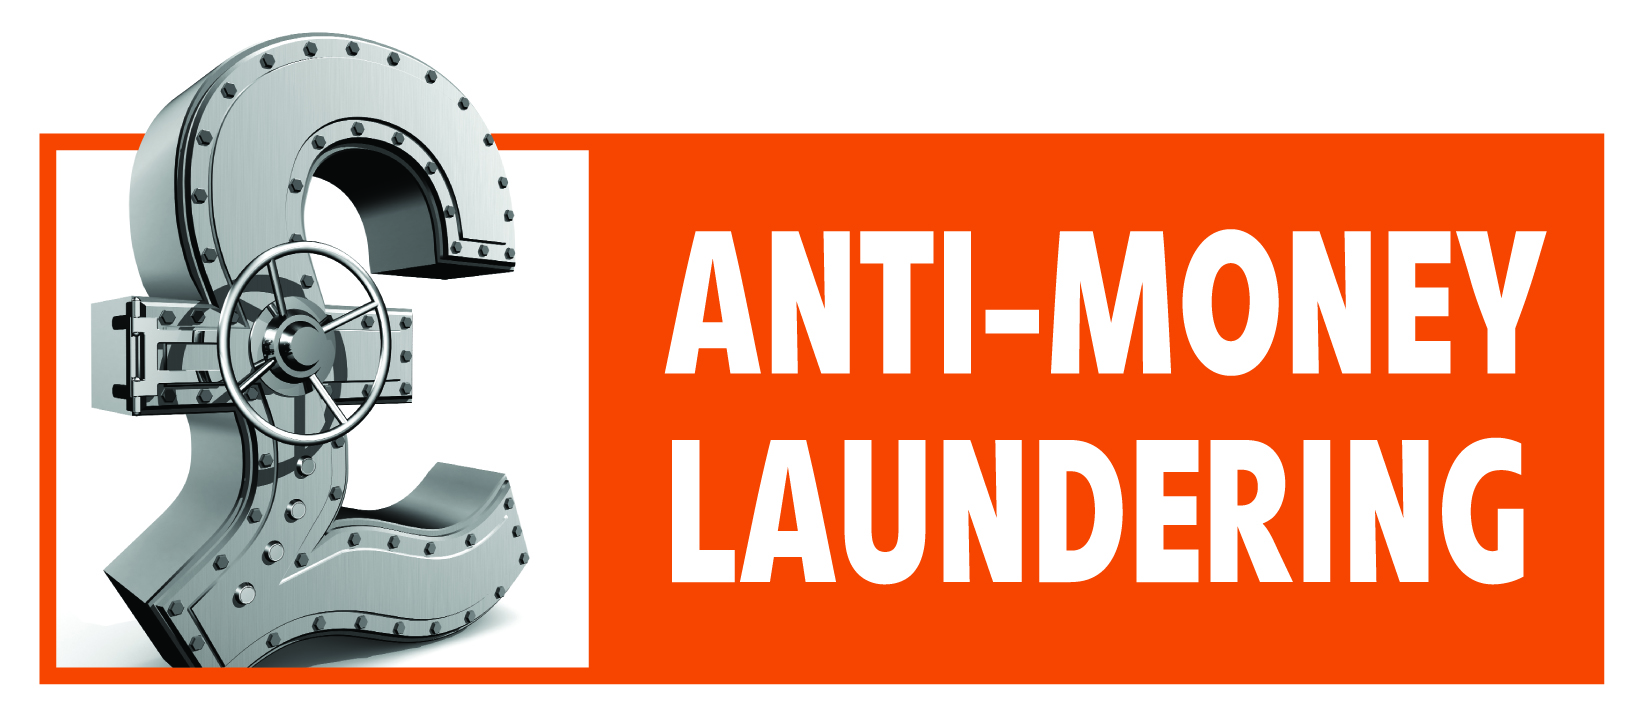 Anti-money Laundering Software